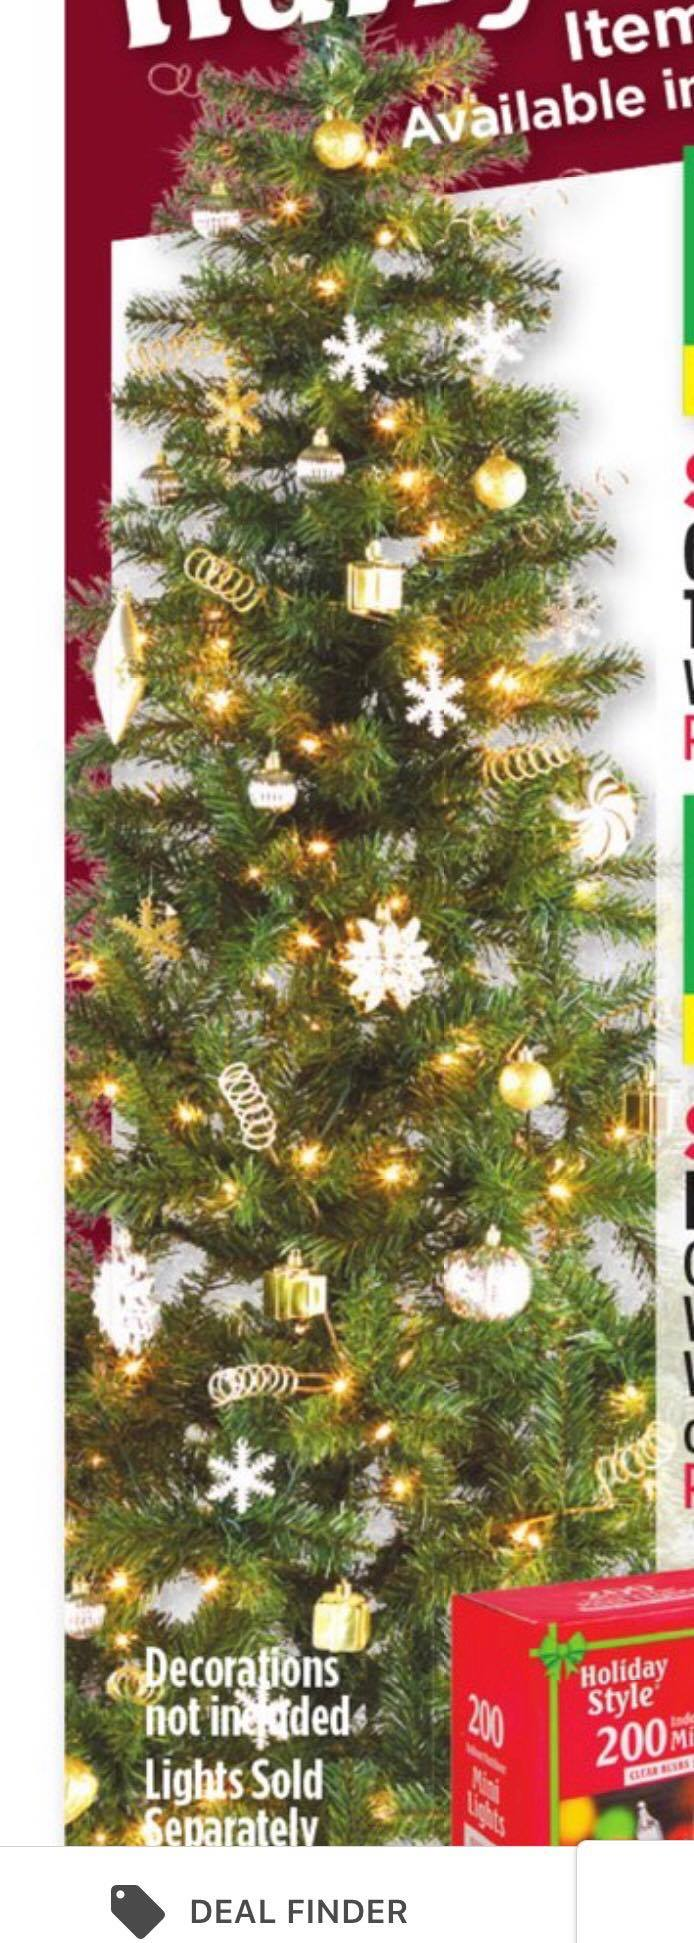 Do You Need A Christmas Tree And Lights? Check This Out!! Dollar General  $3/15 Scenario! #couponcommunity, #dollargeneral2daysale, #dollargeneral$3/  ...